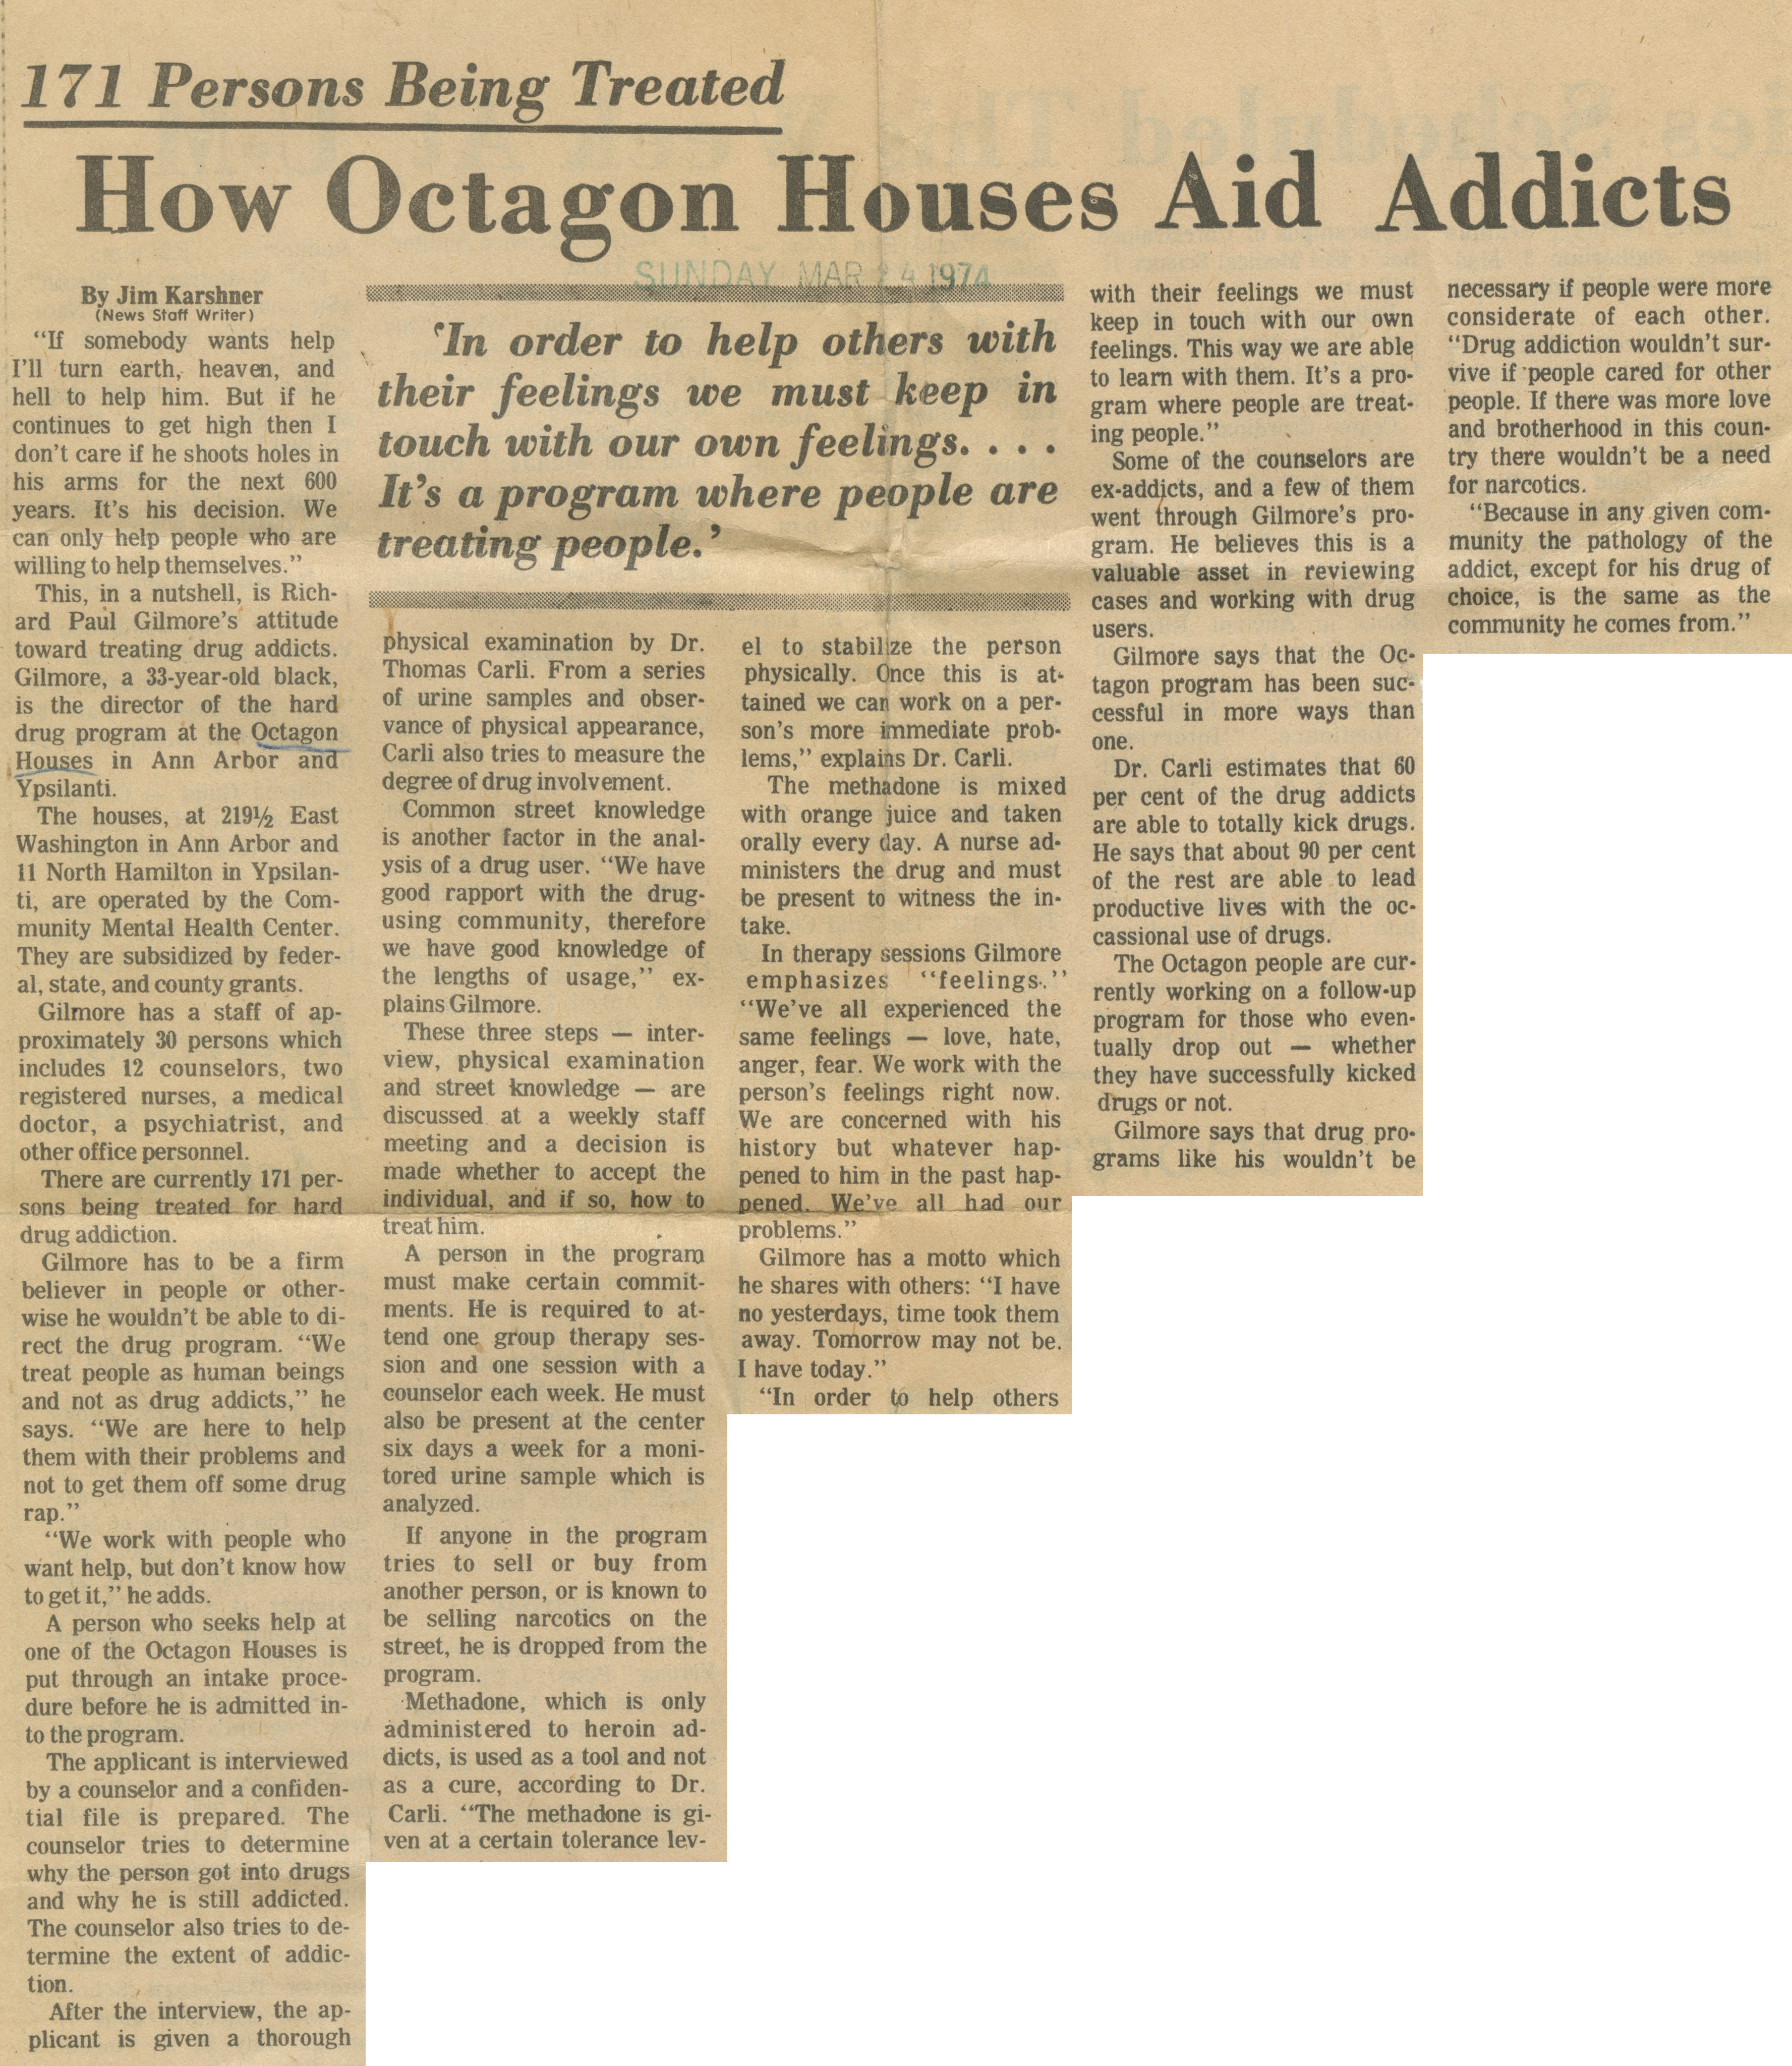 How Octagon Houses Aid Addicts image